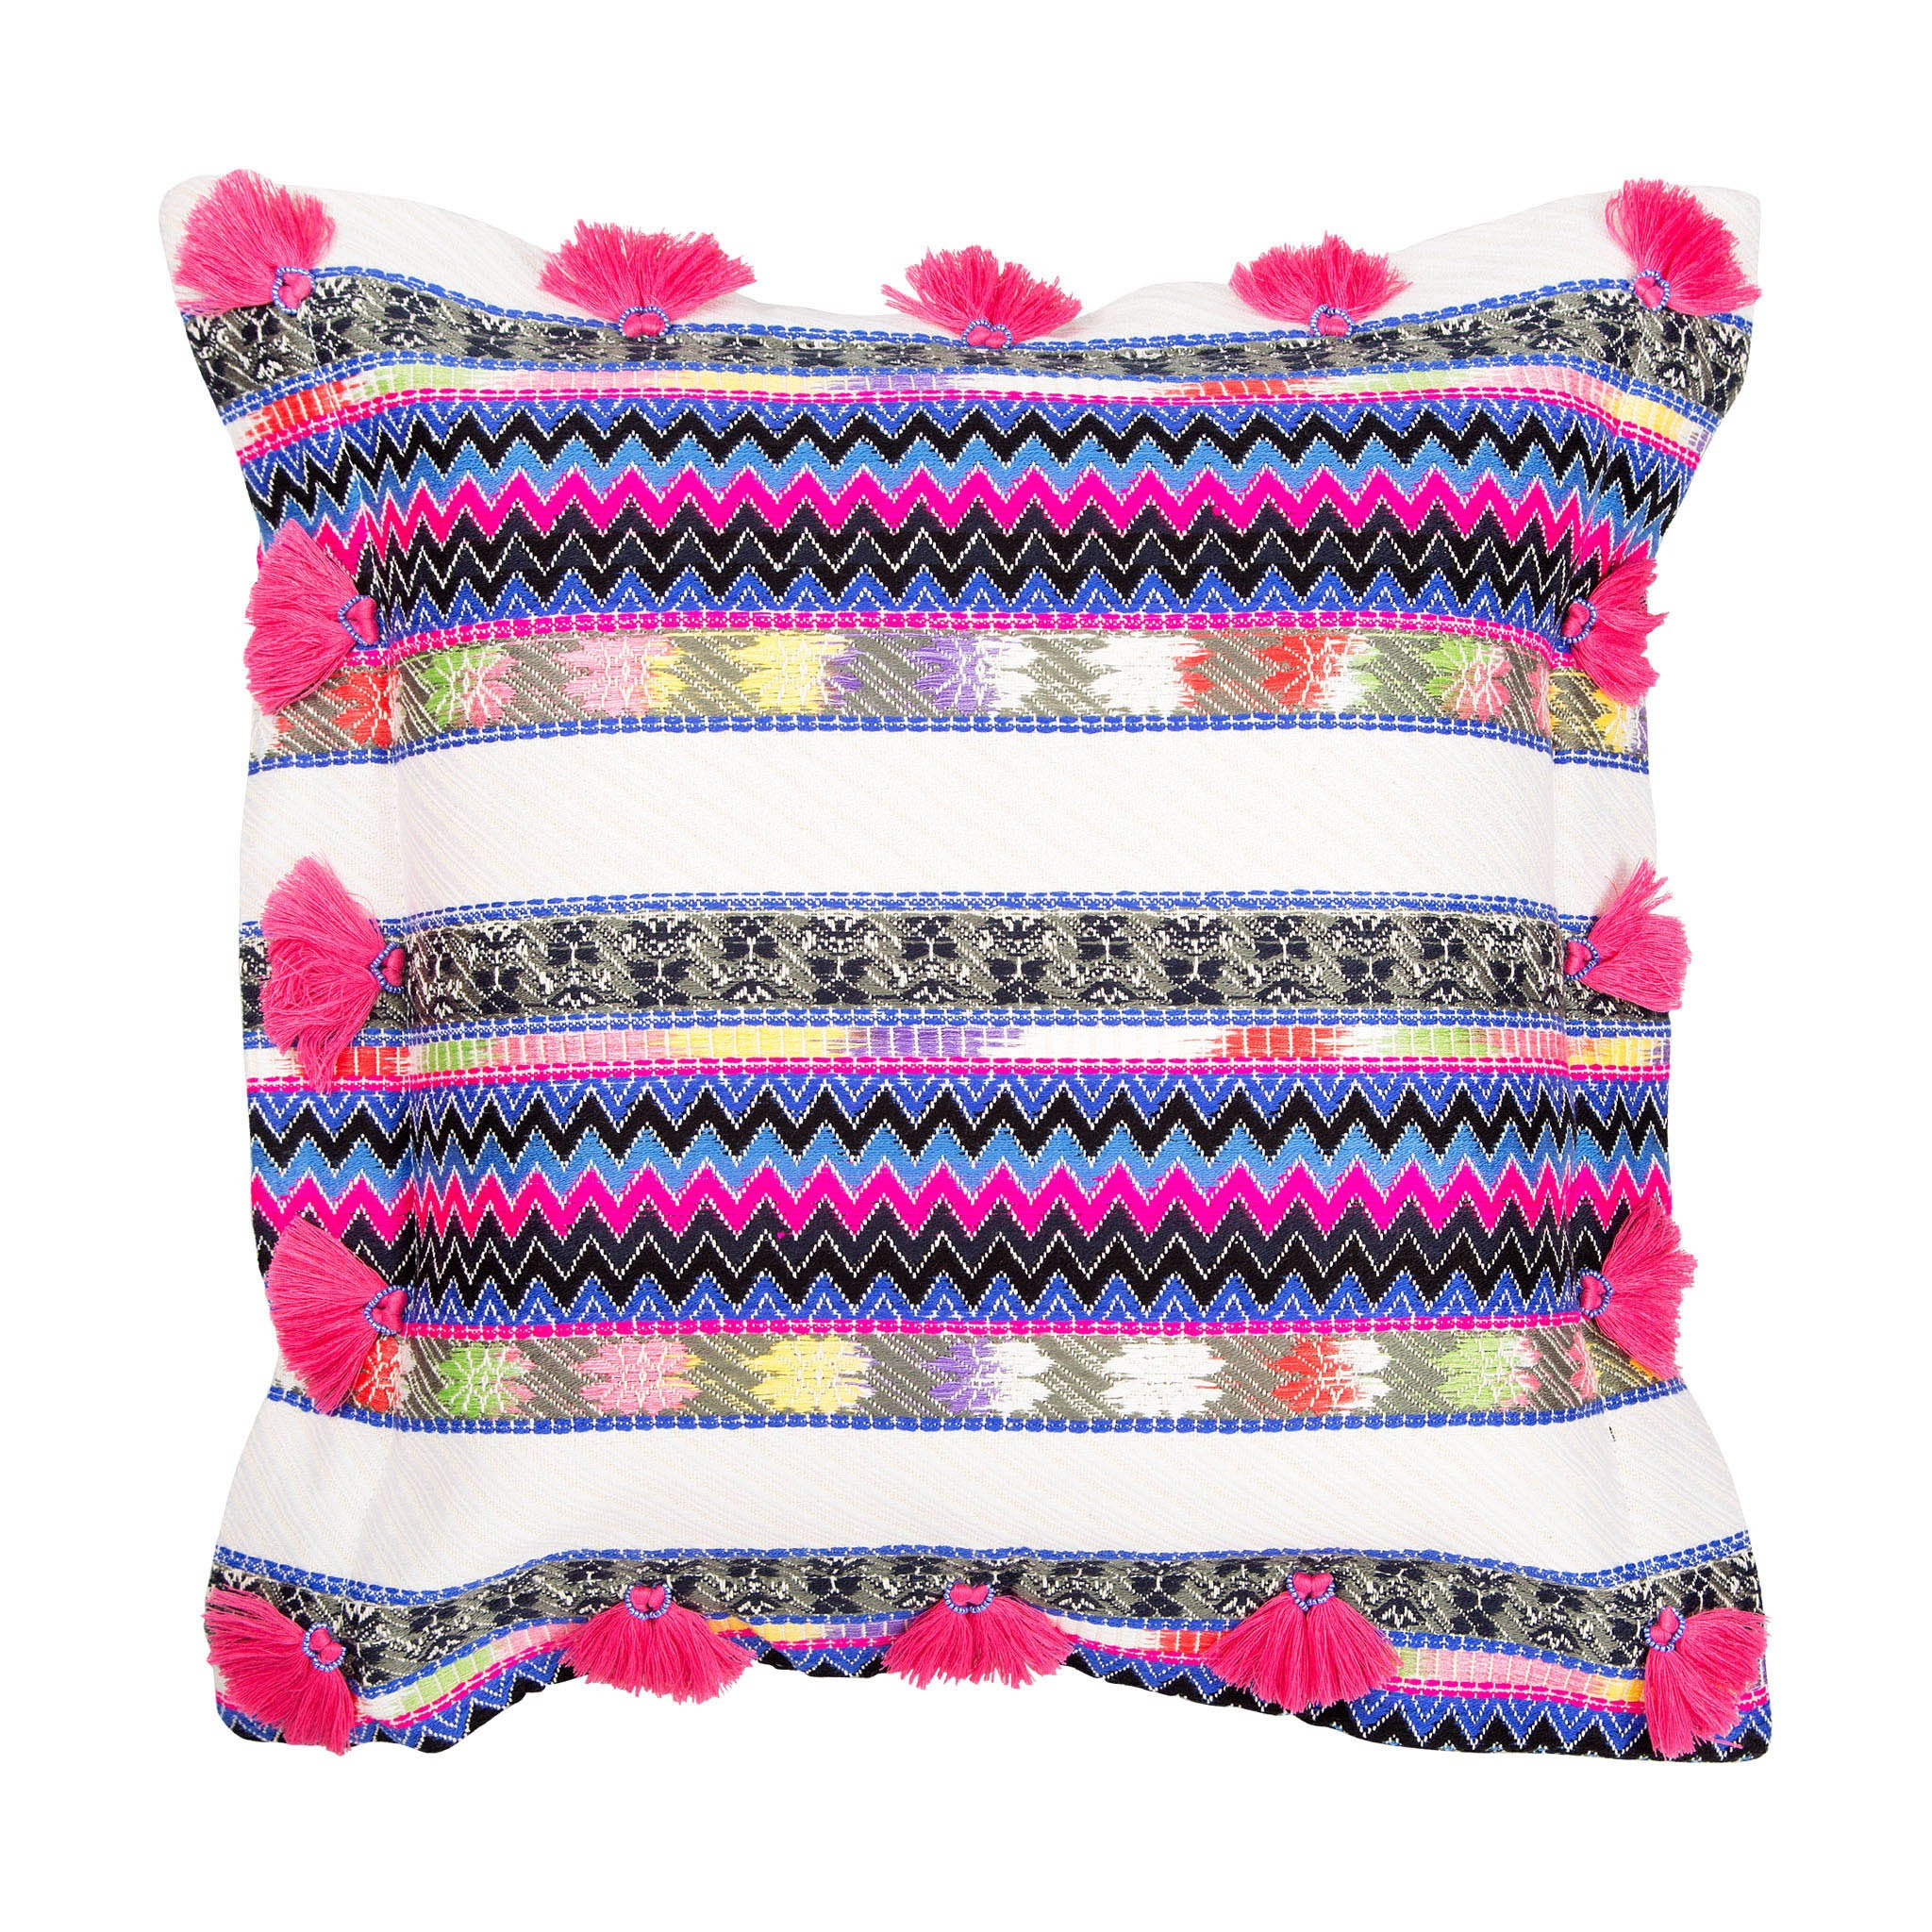 Bedouin-style cotton cushion with pink tassels - Bivain - 1